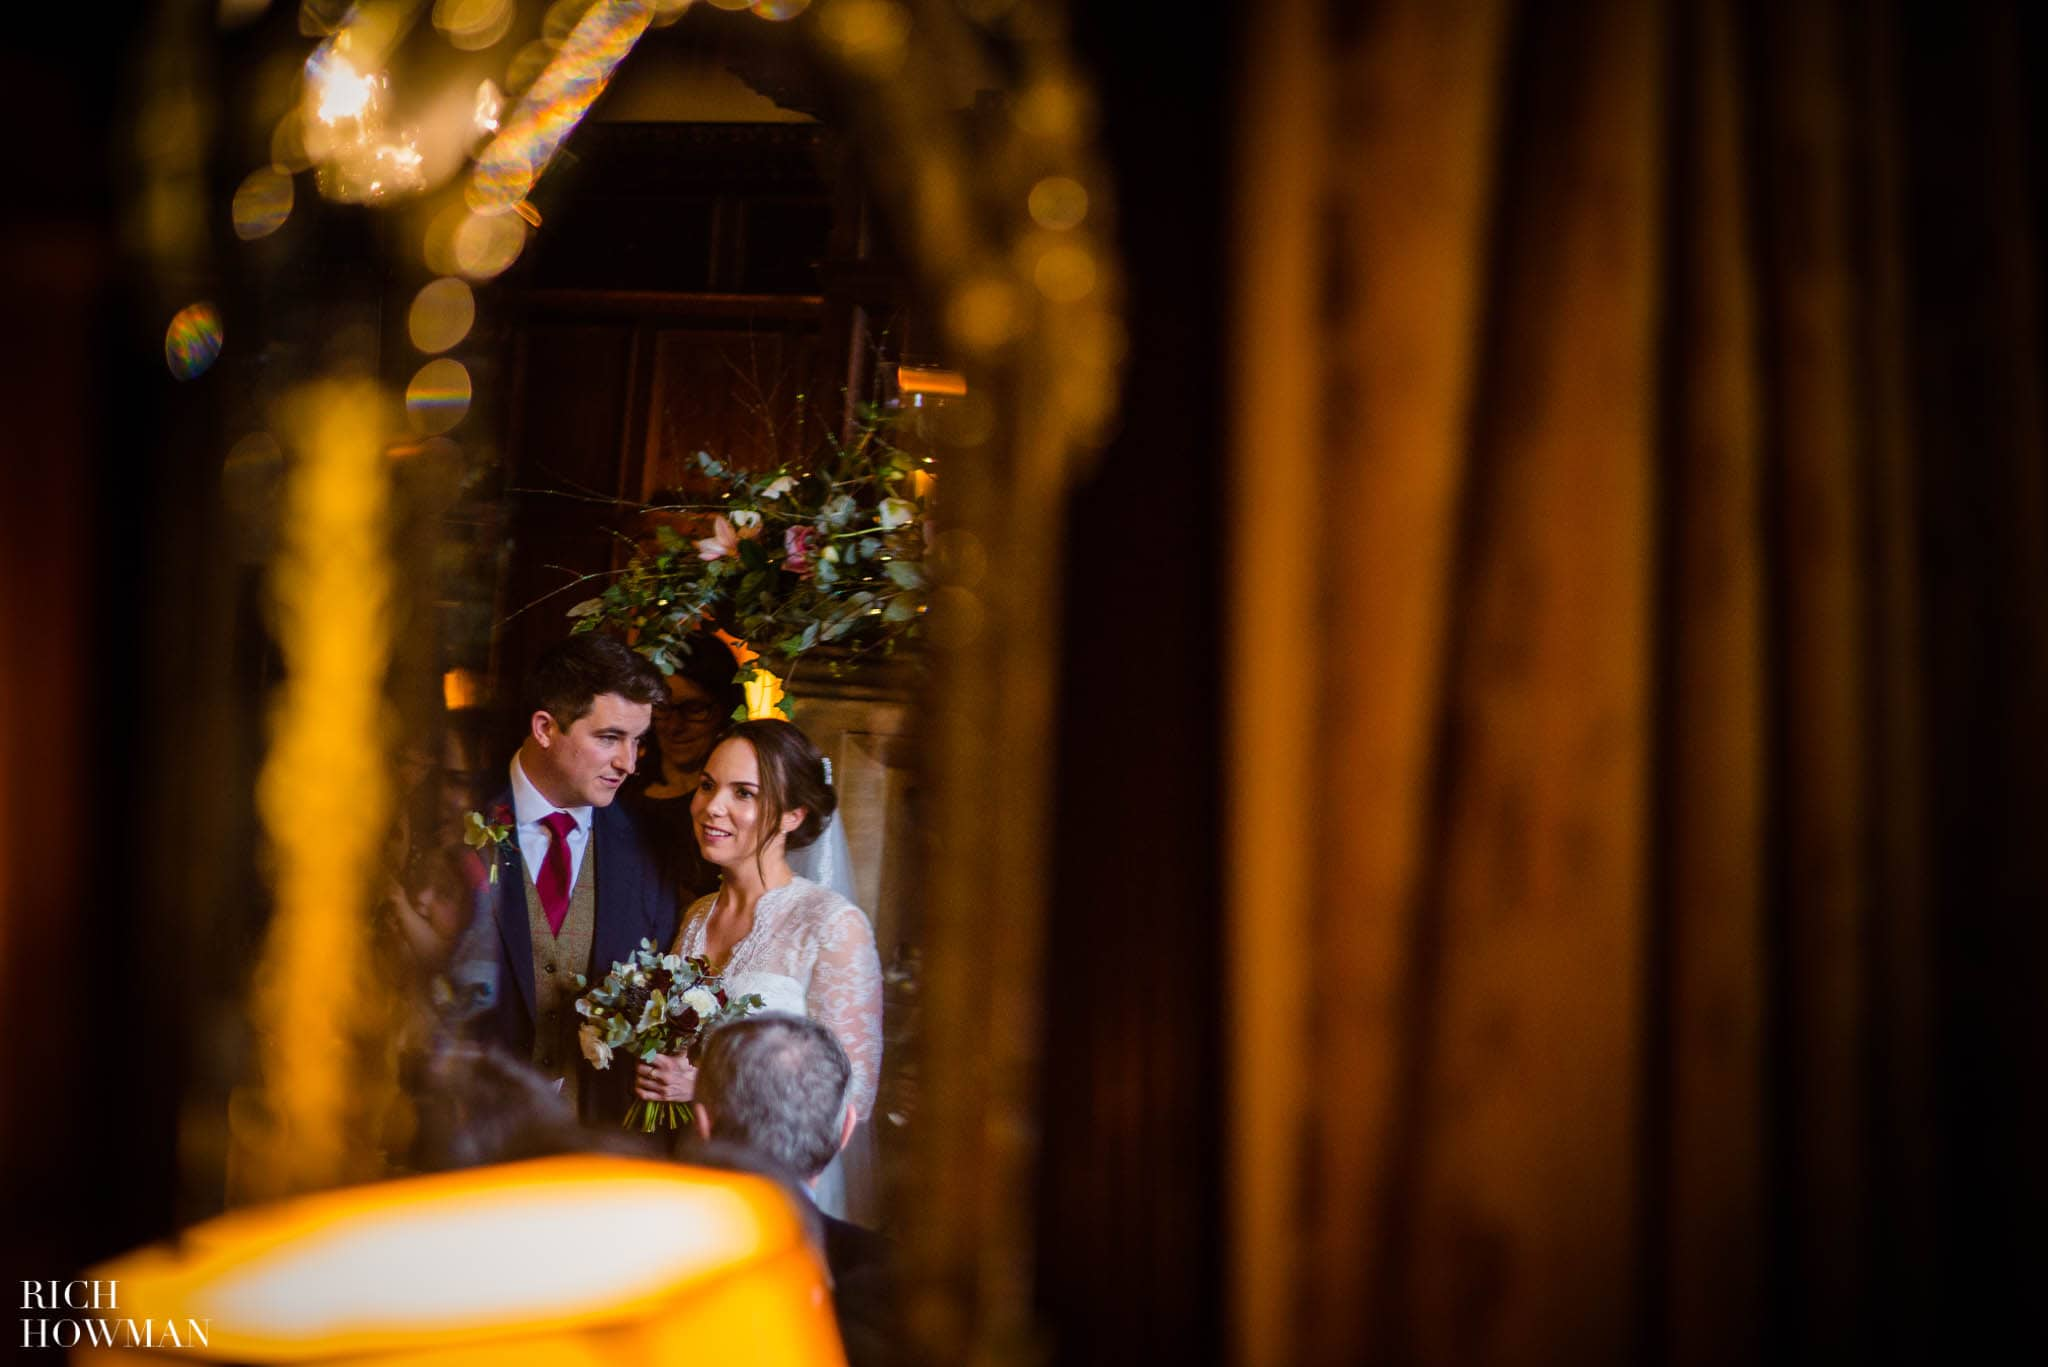 The happy couple reflected in a mirror on their Huntsham Court wedding day